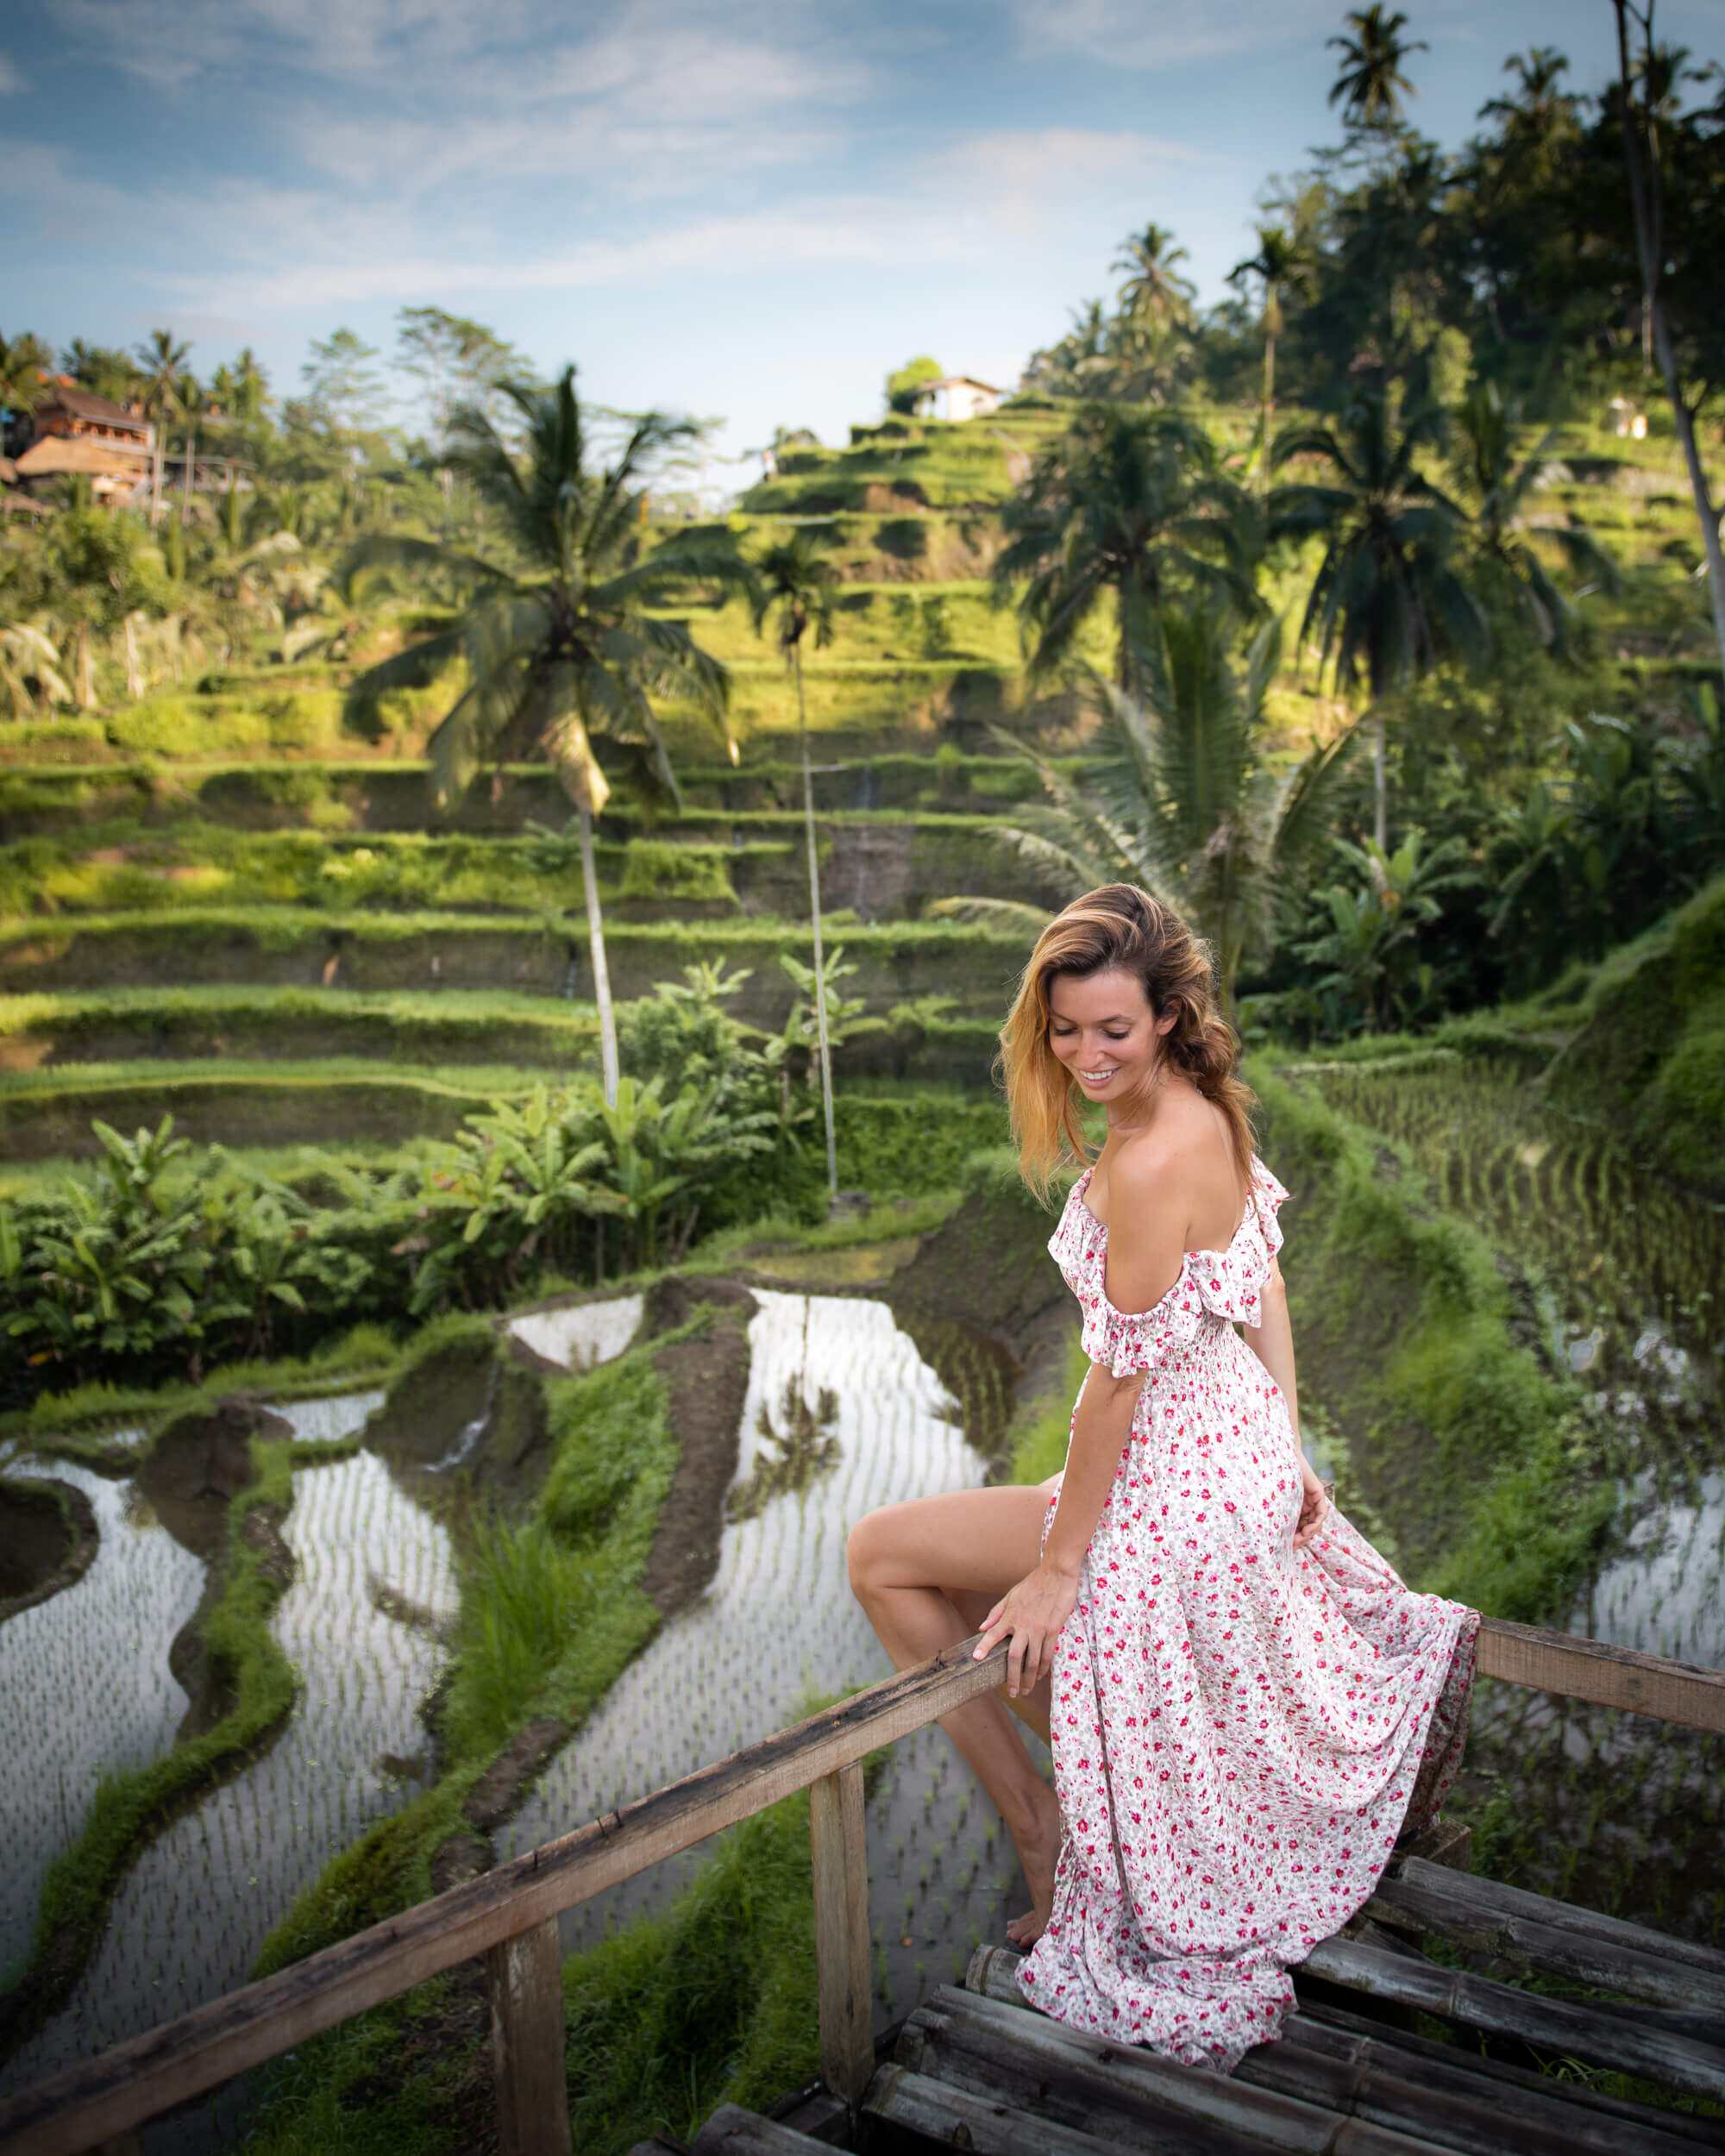 Exploring the rice terraces in Bali. Photo by:  Jess Bonde